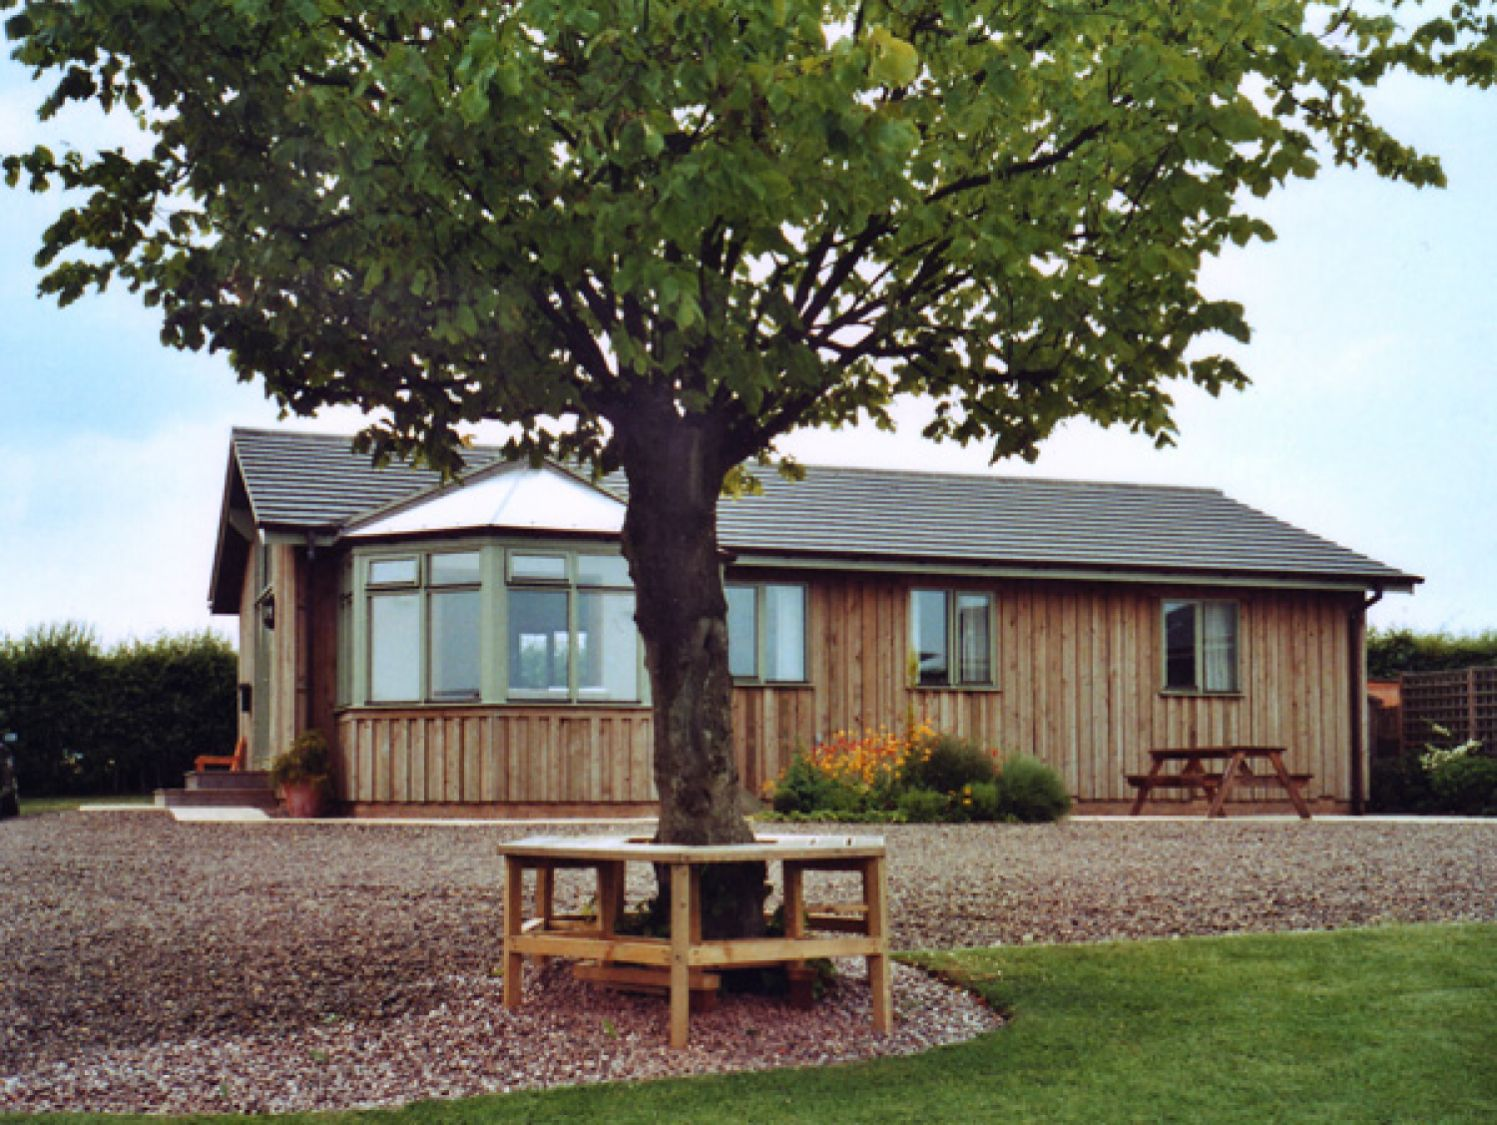 Miramar Lodge Holiday Lodges in Northumberland